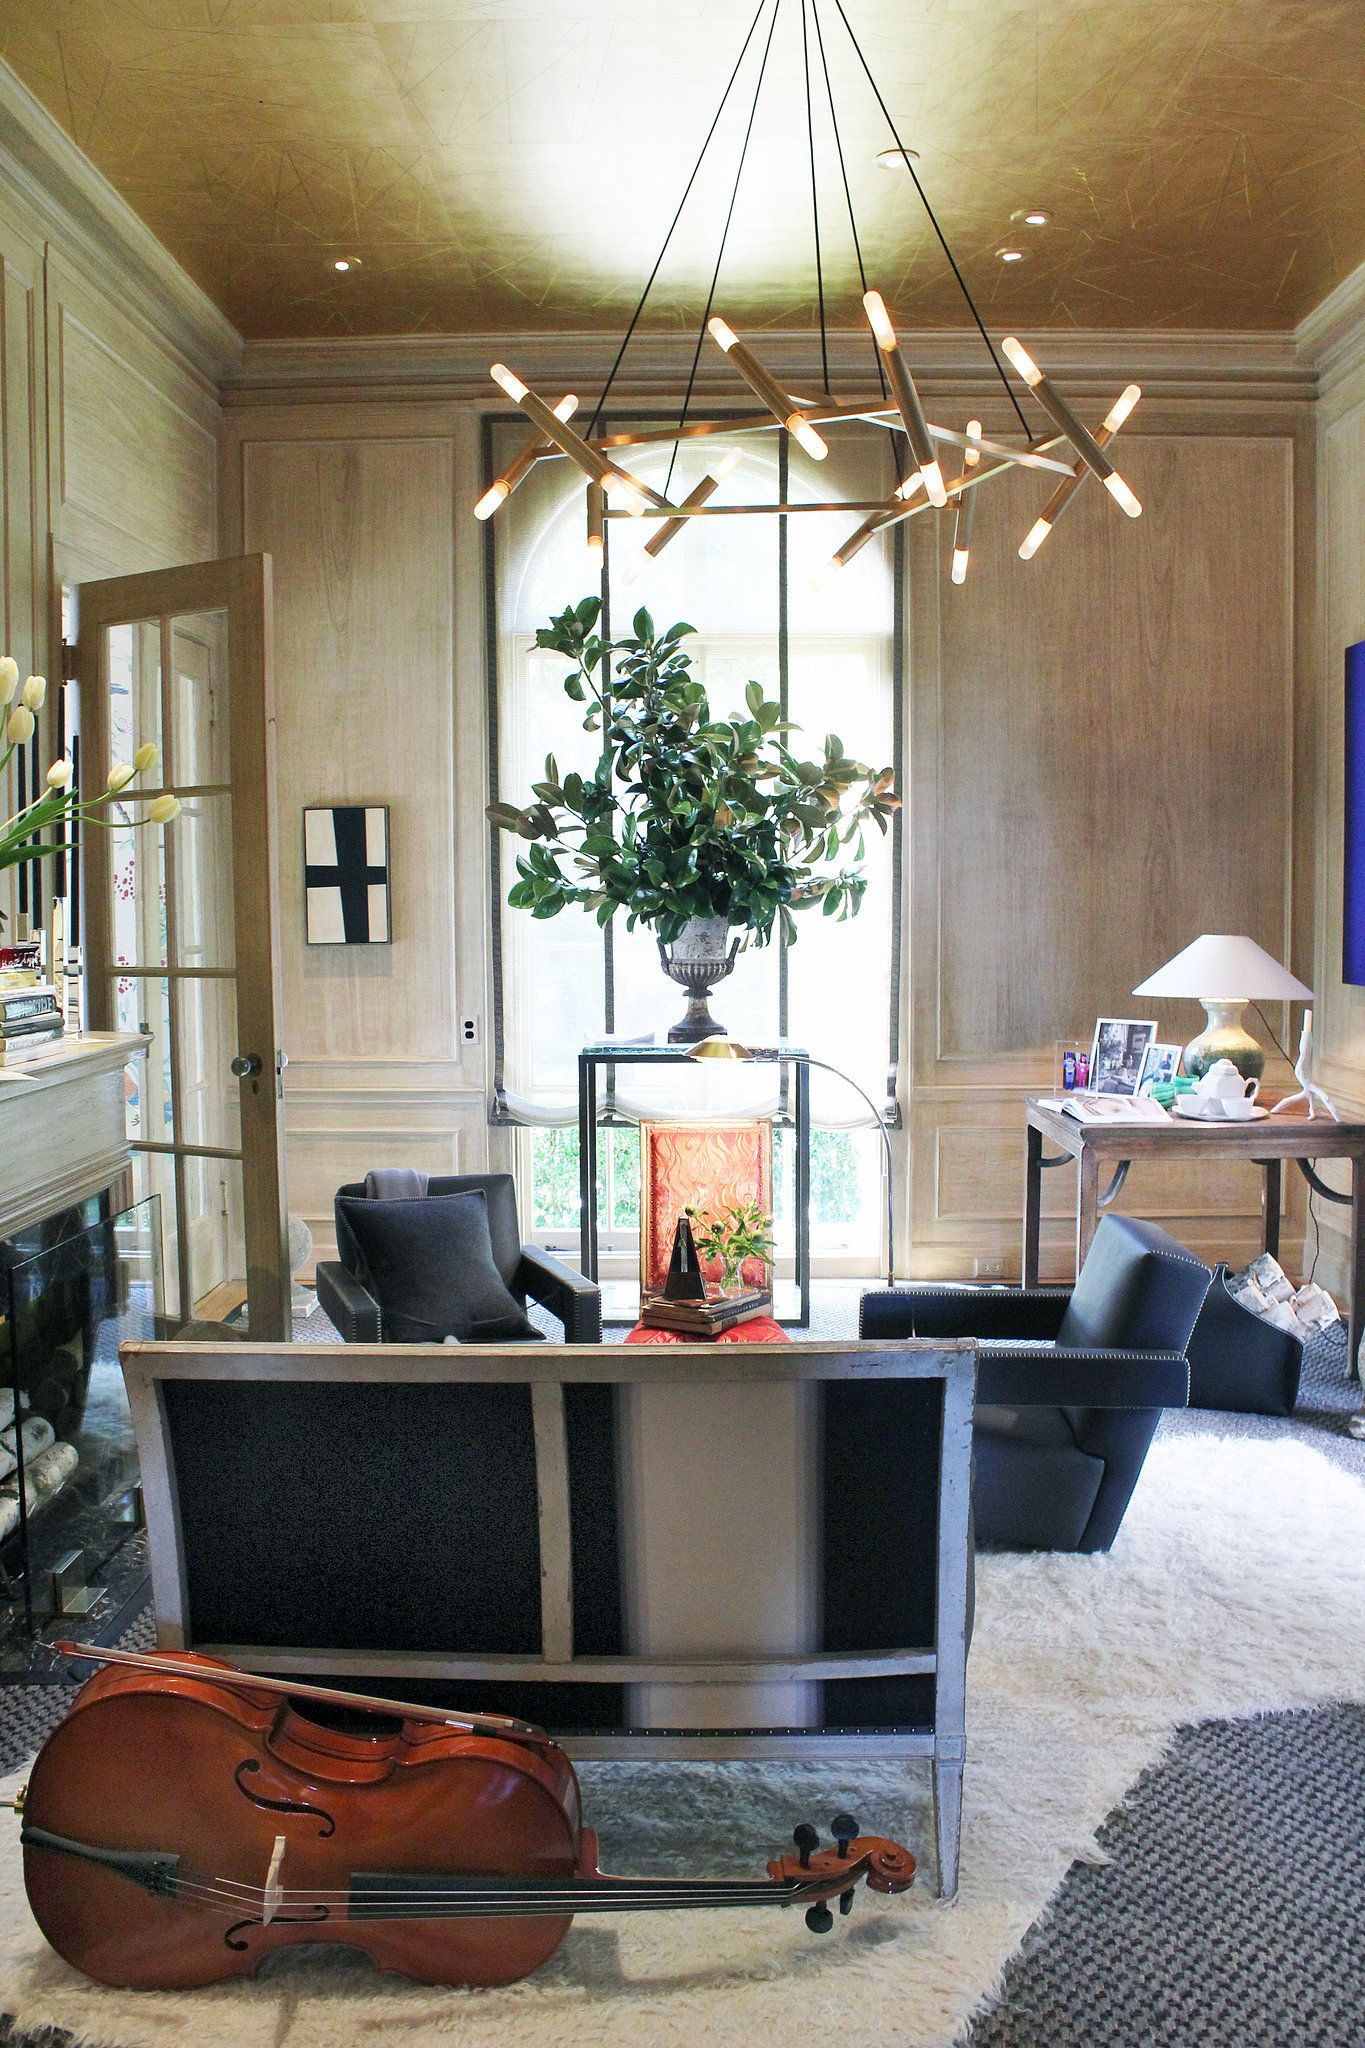 Living Room Showcase Design: Pin By Haneka Haynes On ARCHITECTURE + DESIGN/